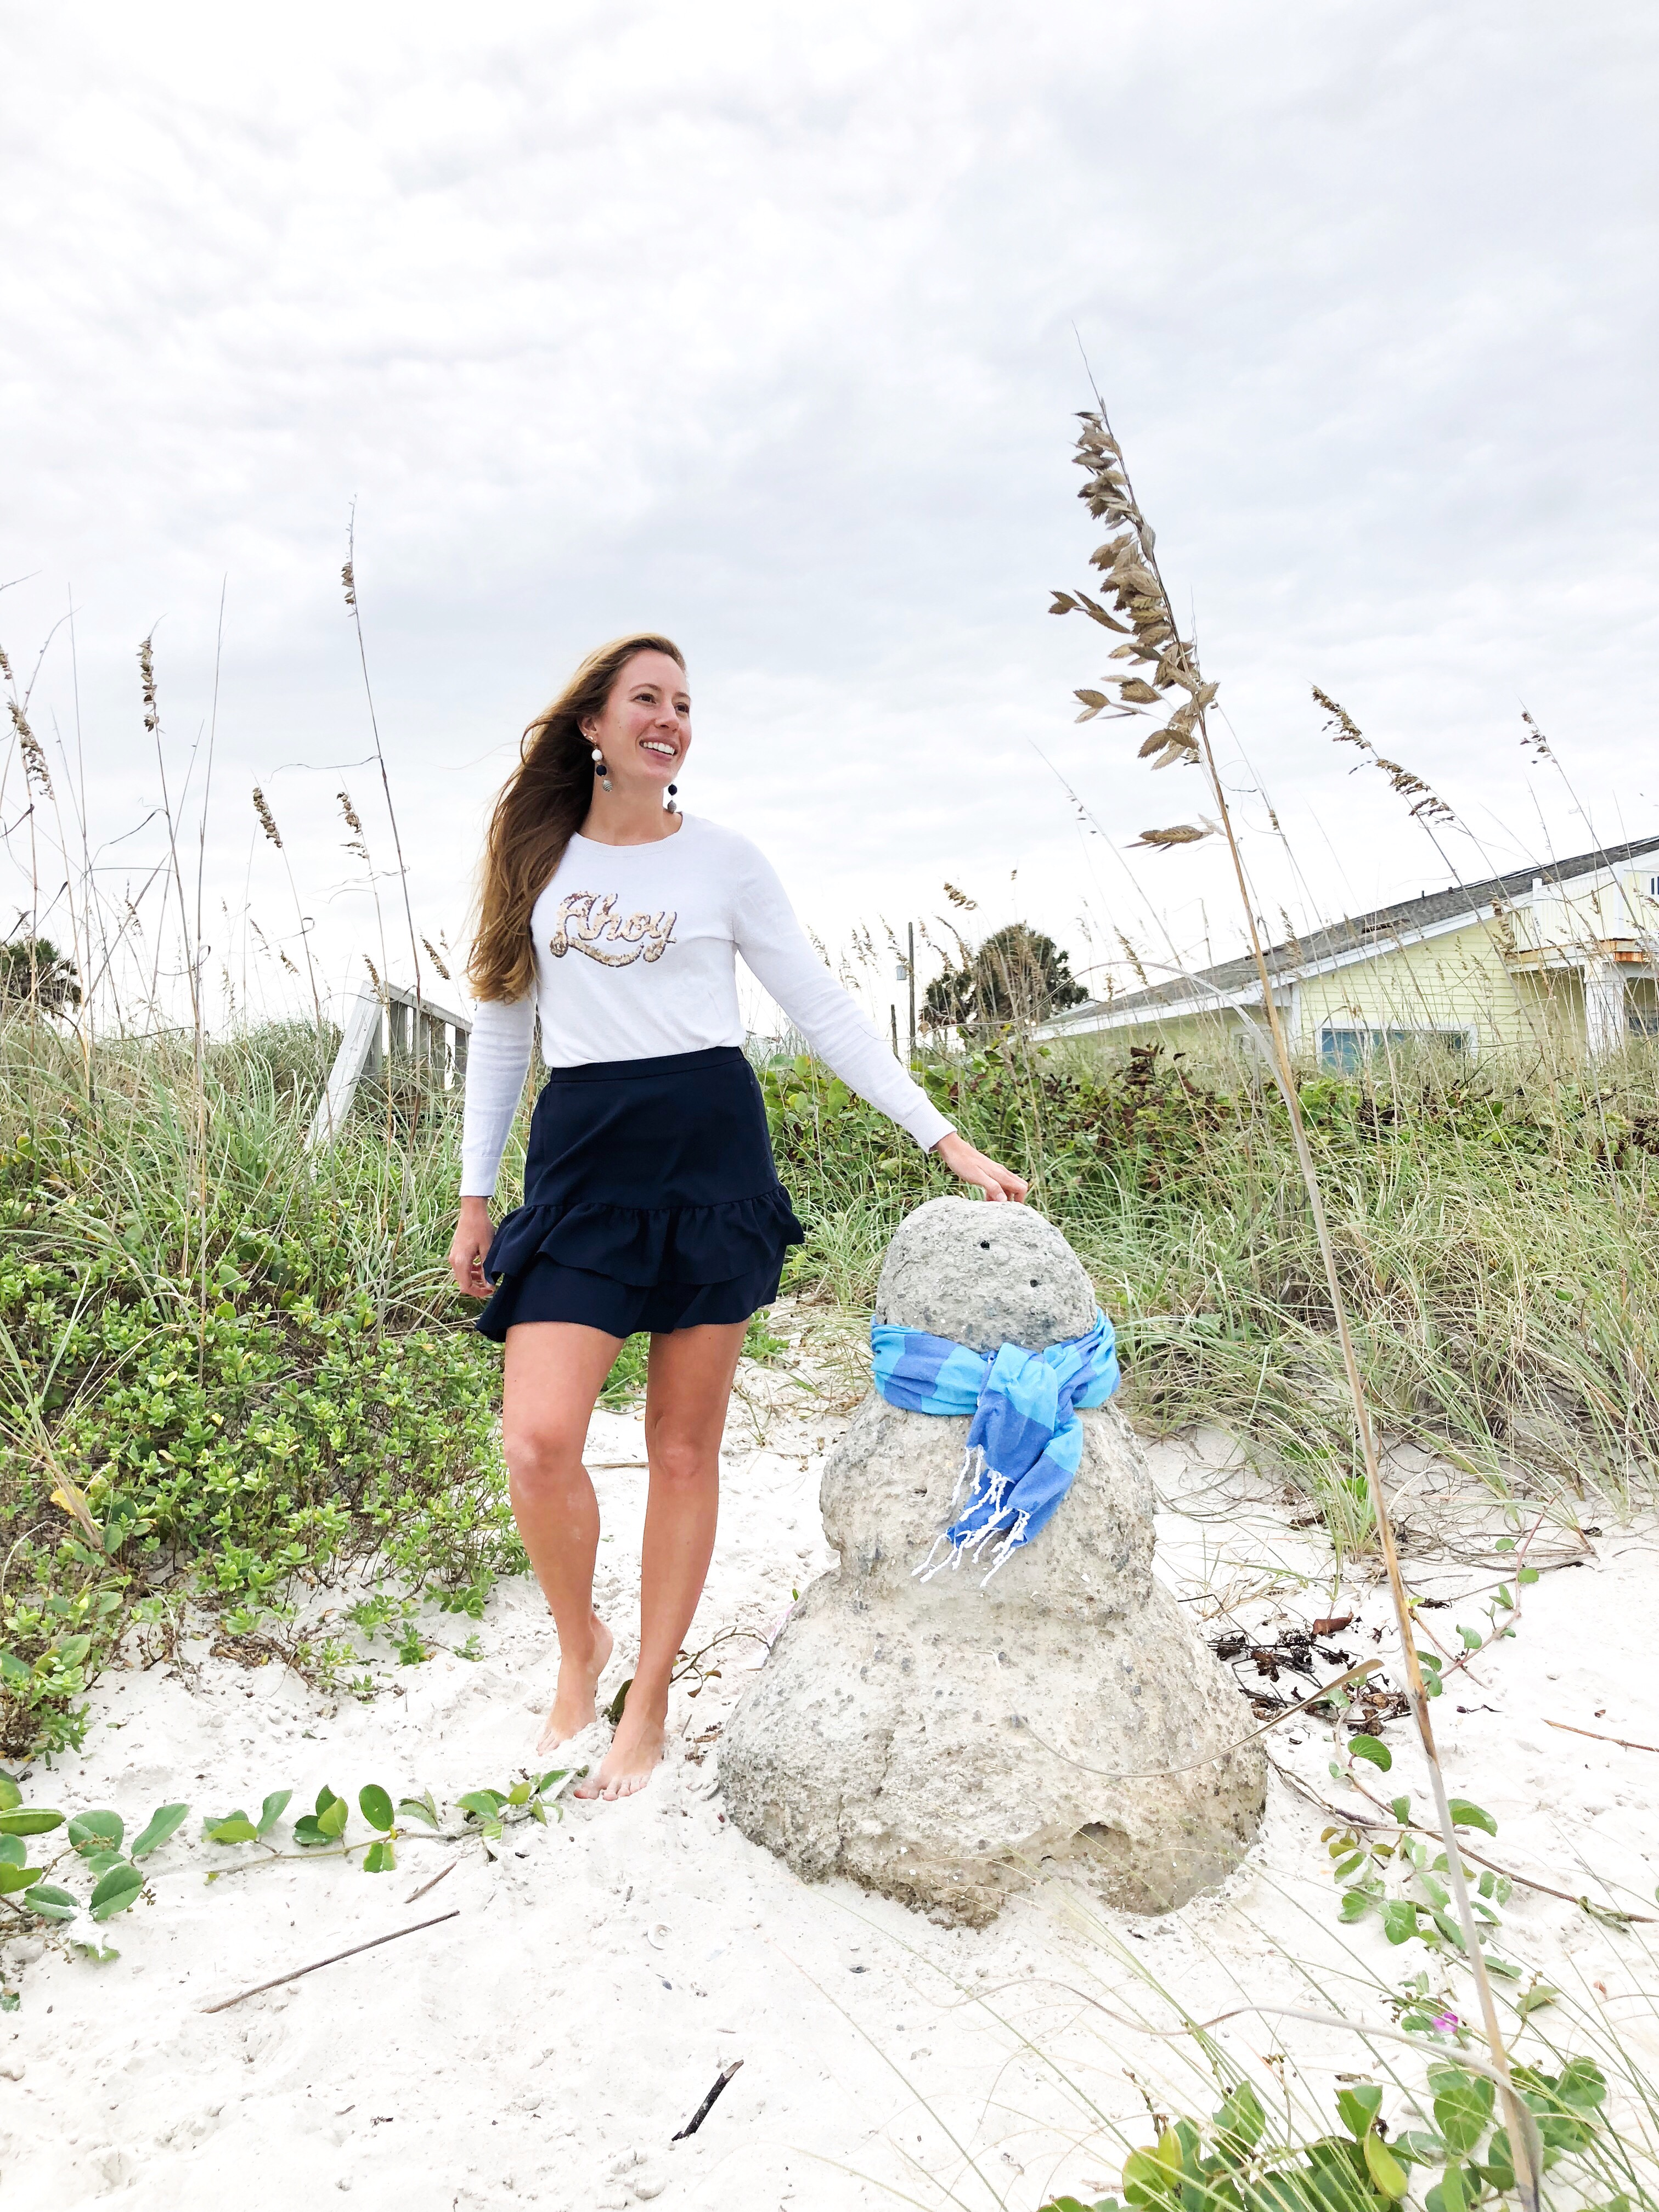 Best Black Friday Sales 2018 | Christmas in Florida | Beach Snowman | Sand Snowman - More on www.sunshinestyleblog.com